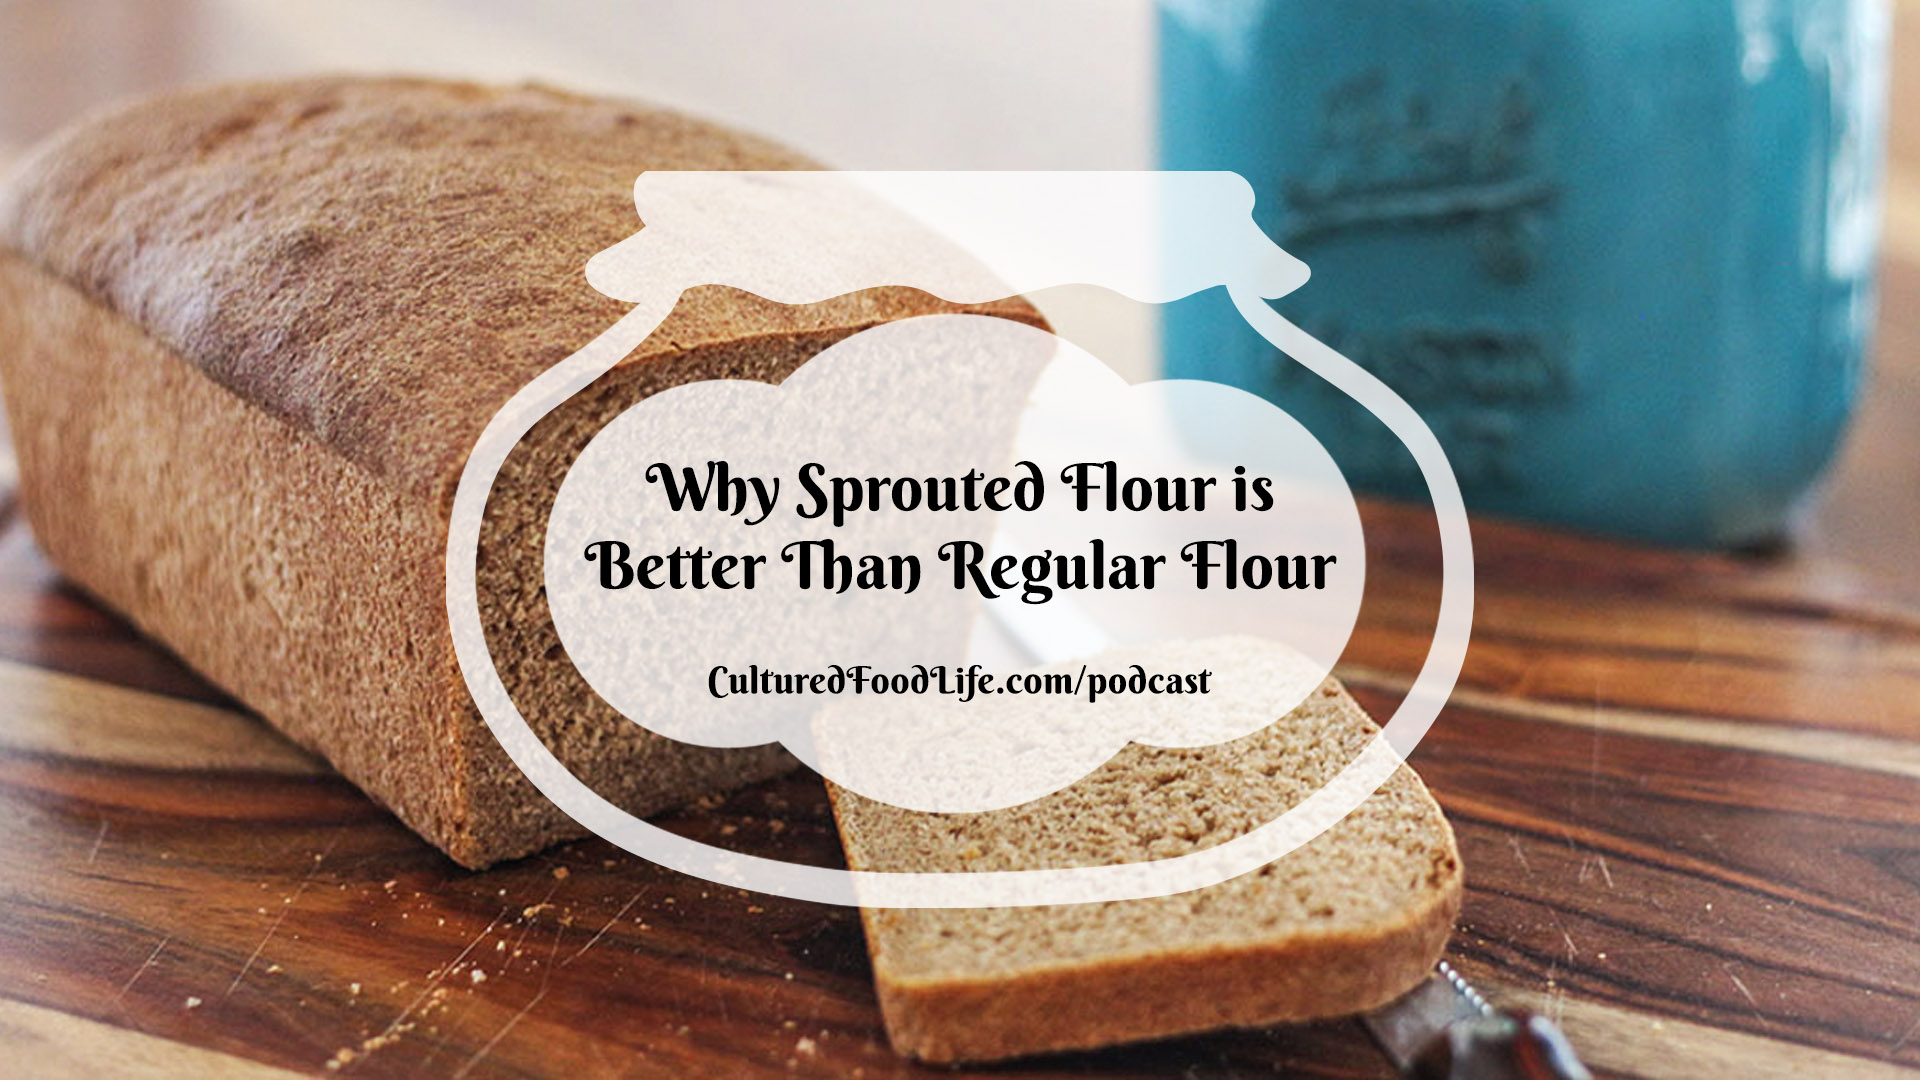 Why Sprouted Flour is Better Than Regular Flour